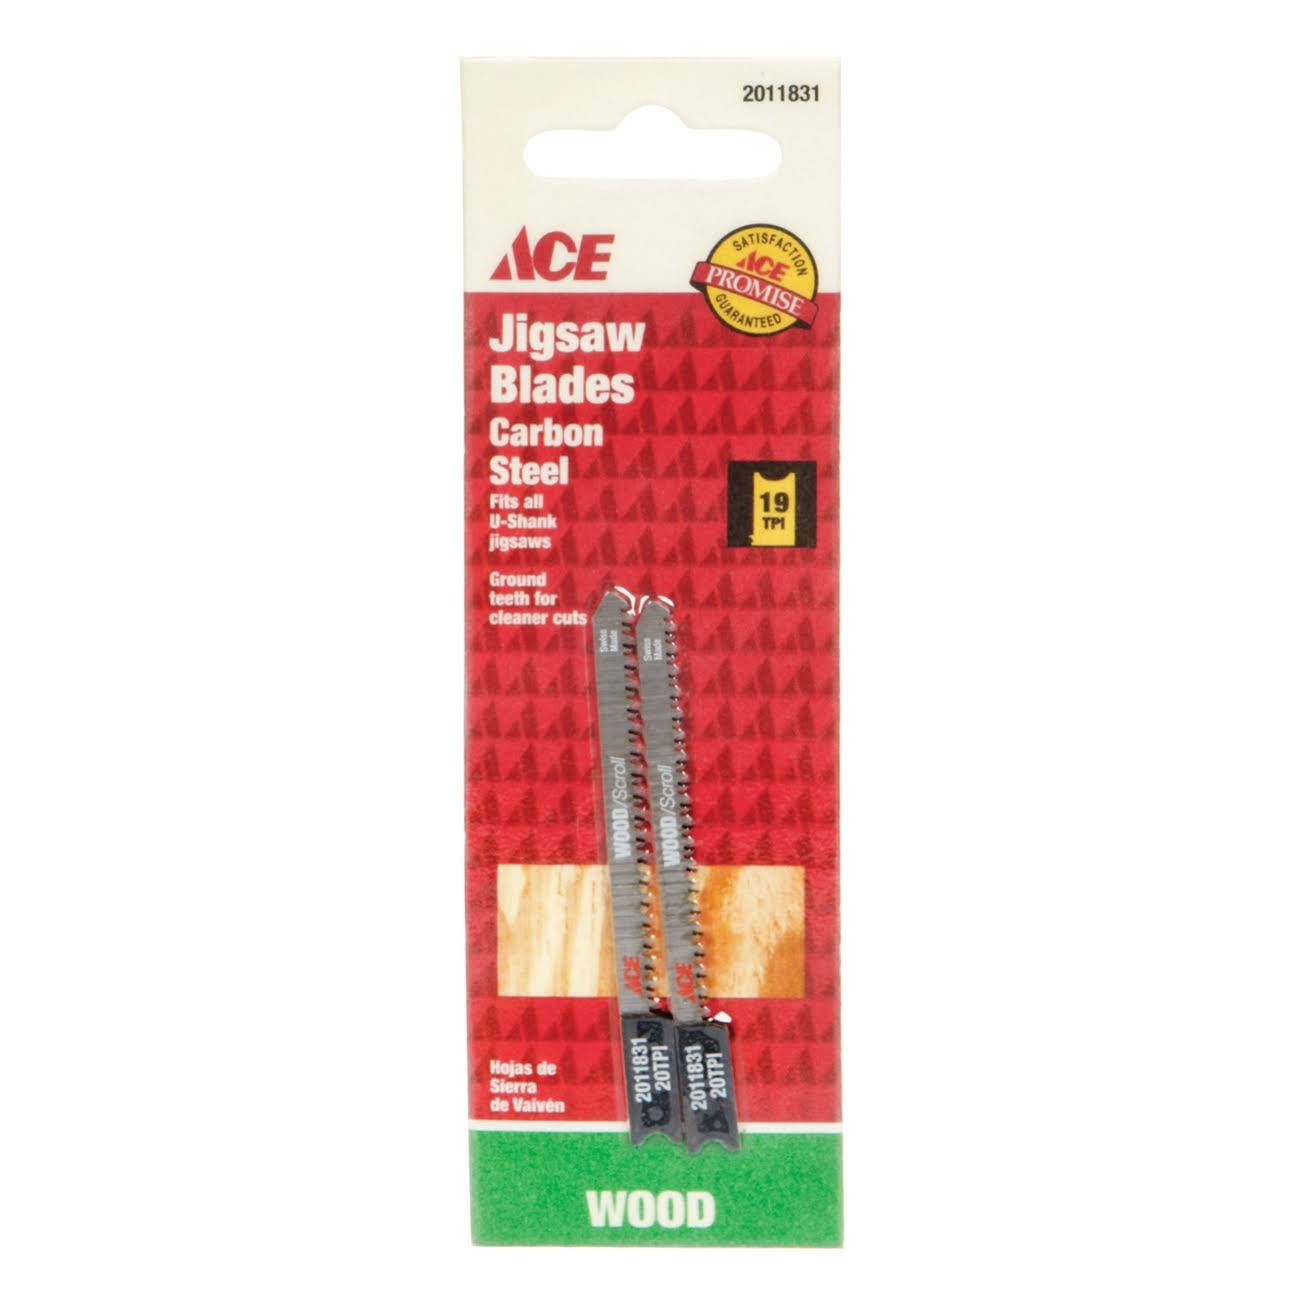 Ace Scrolling Jig Saw Blades